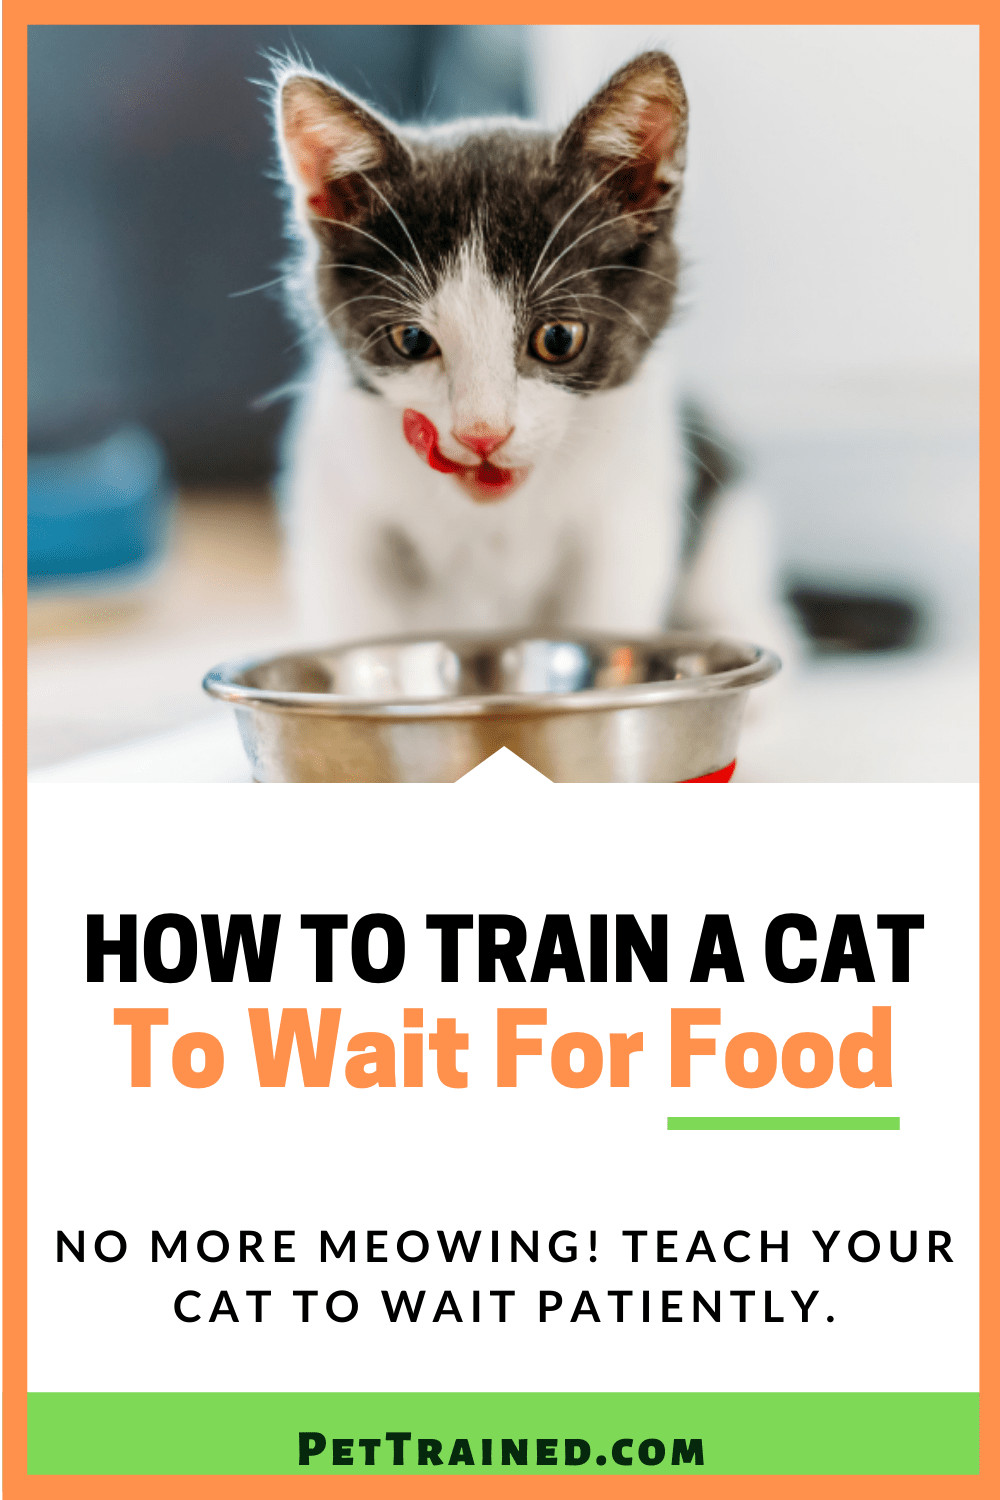 How to train a cat to wait for meals